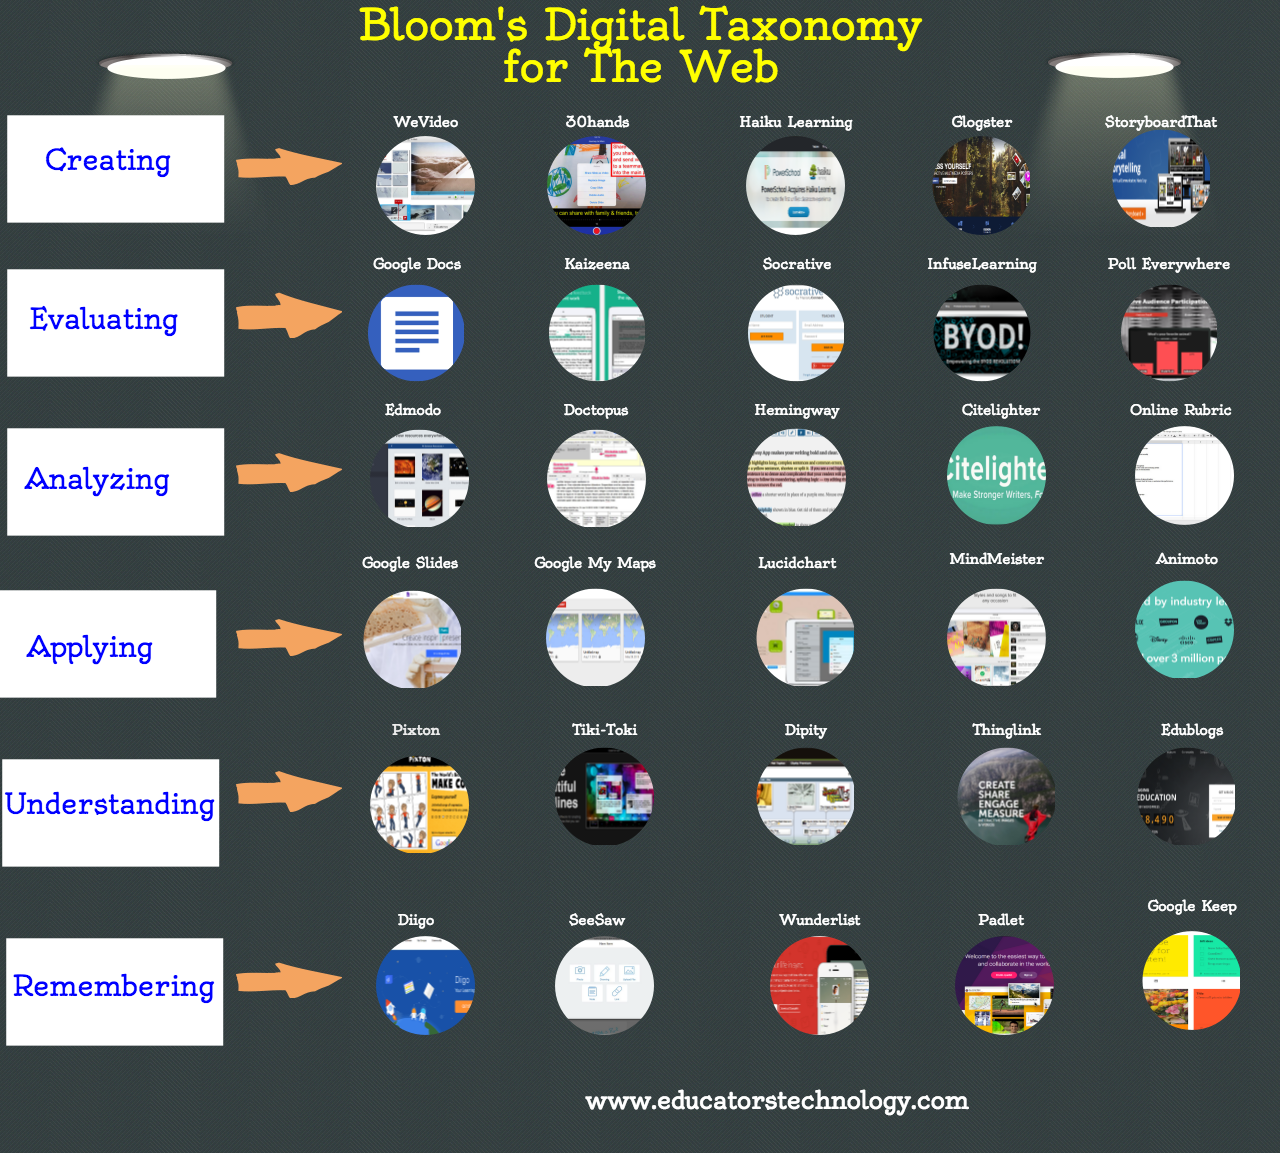 Bloom's Digital Taxonomy for The Web